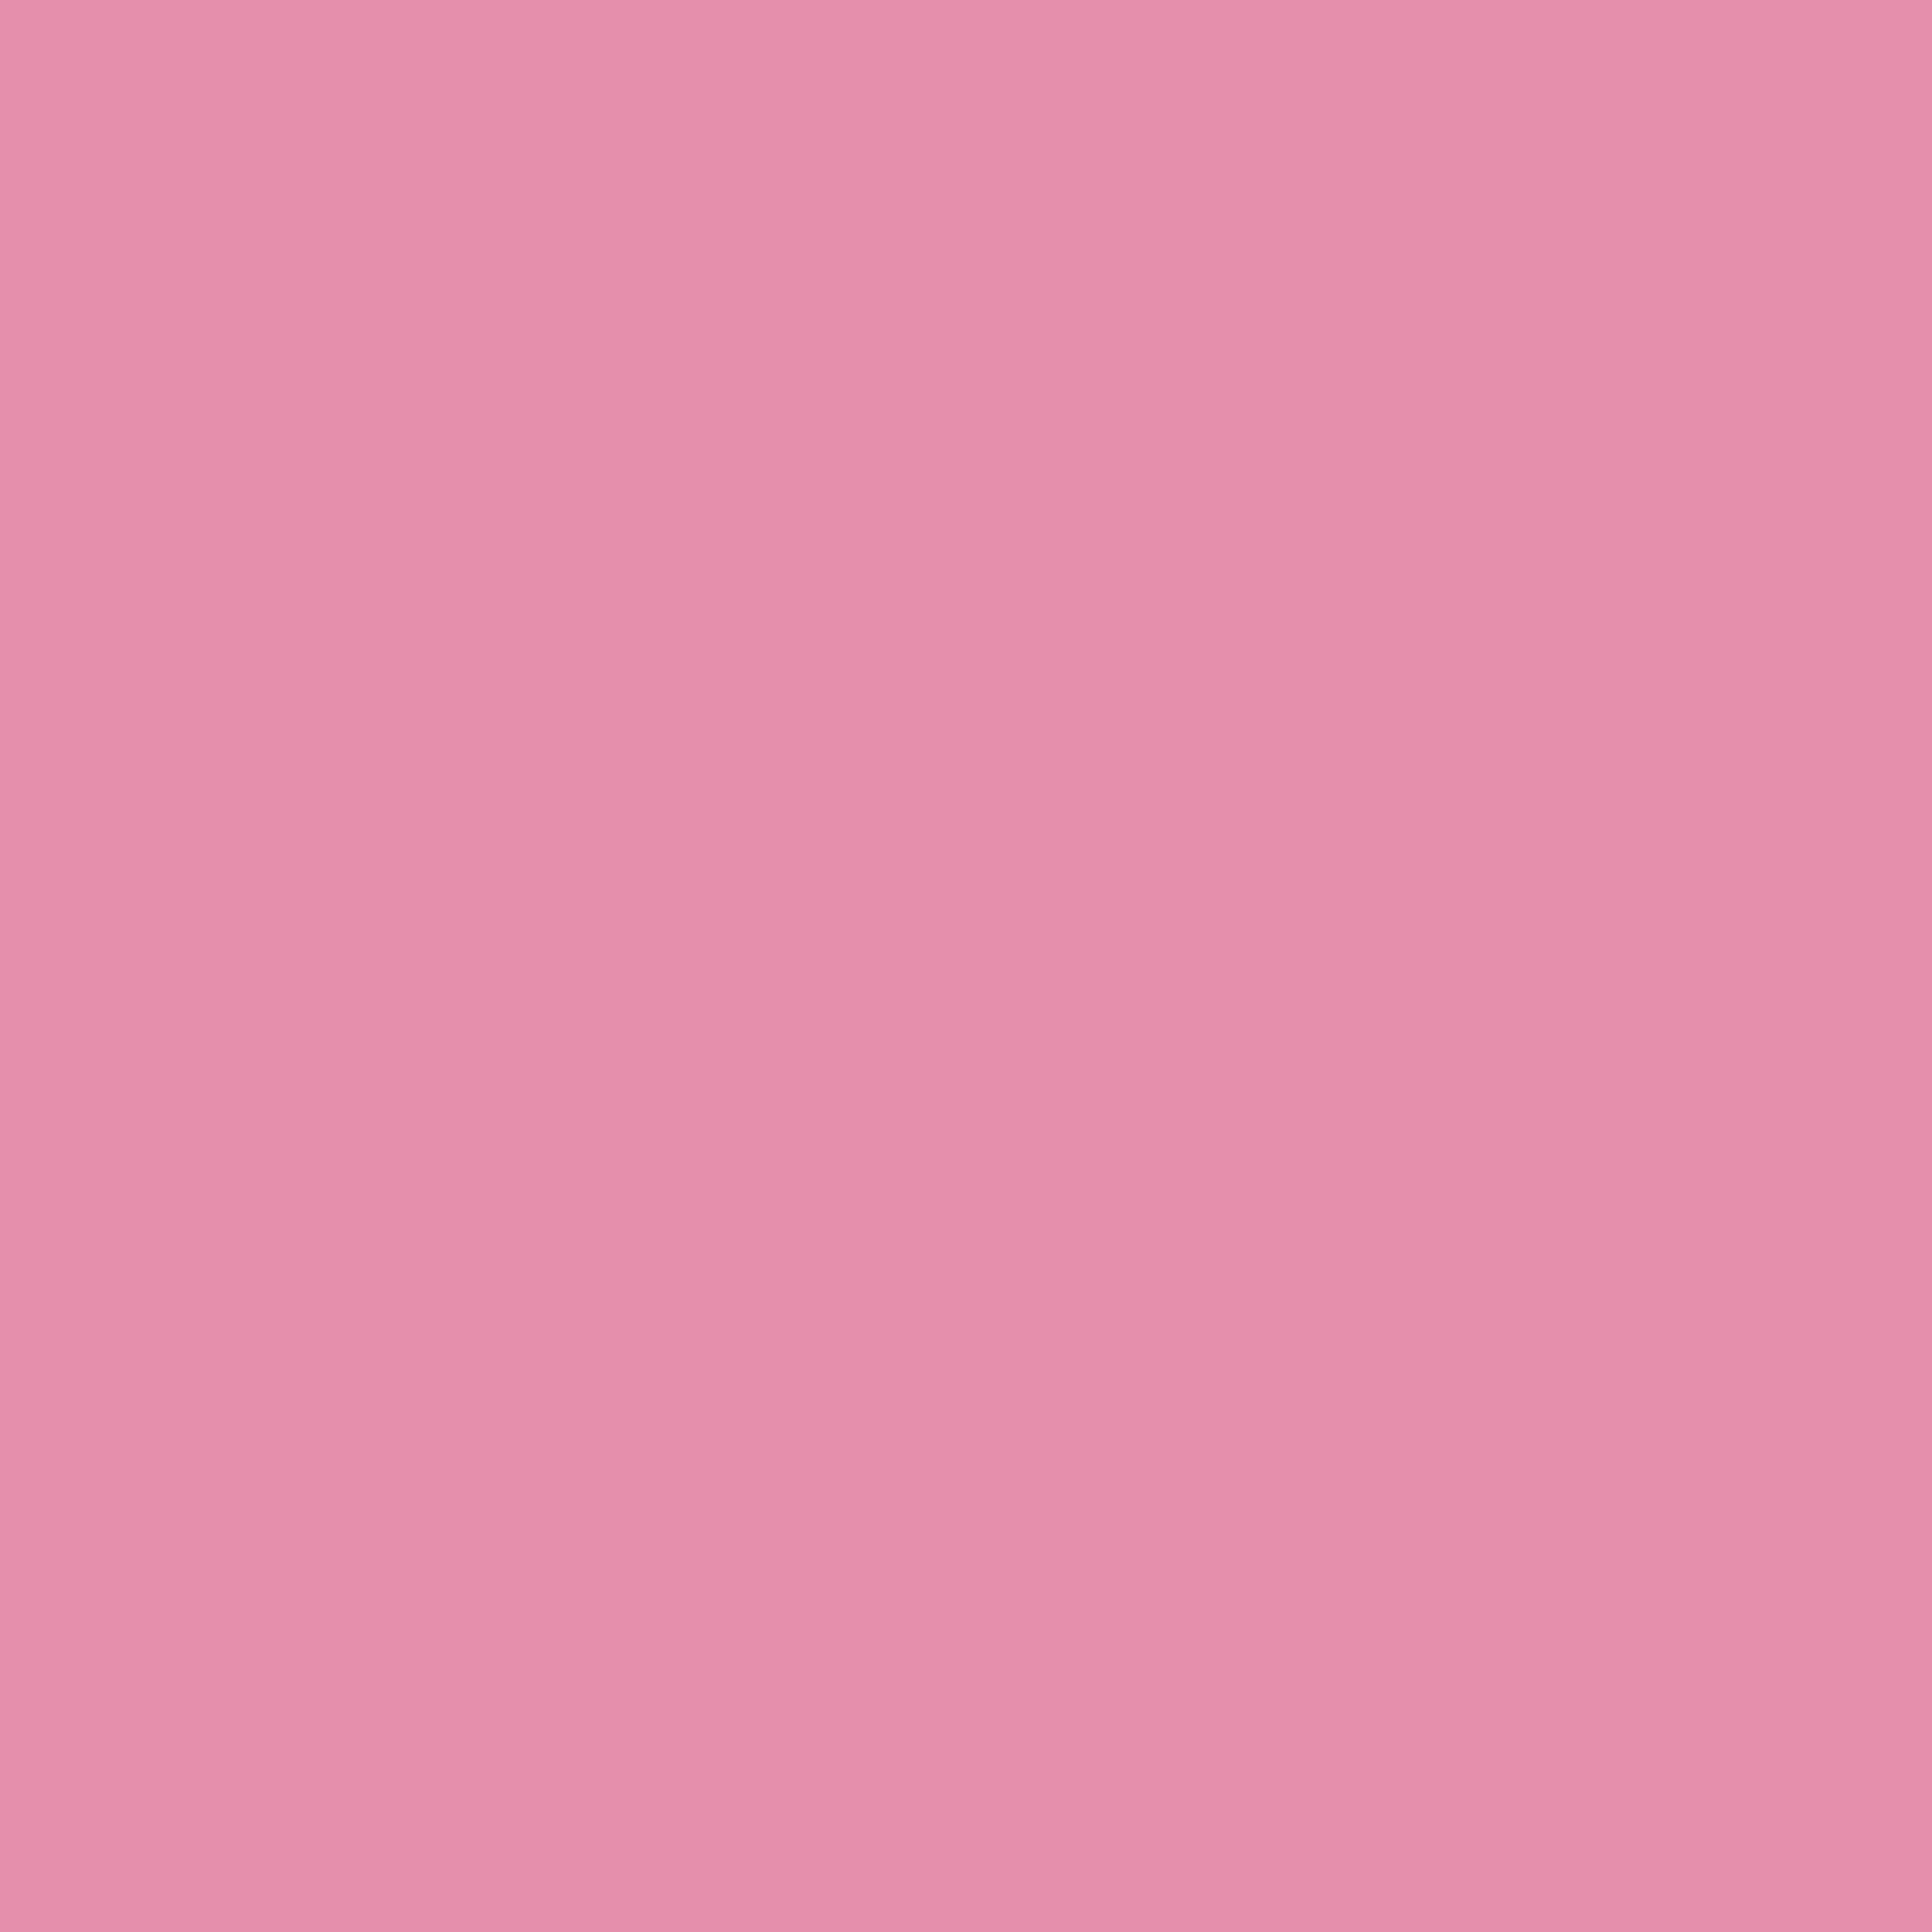 2048x2048 Light Thulian Pink Solid Color Background